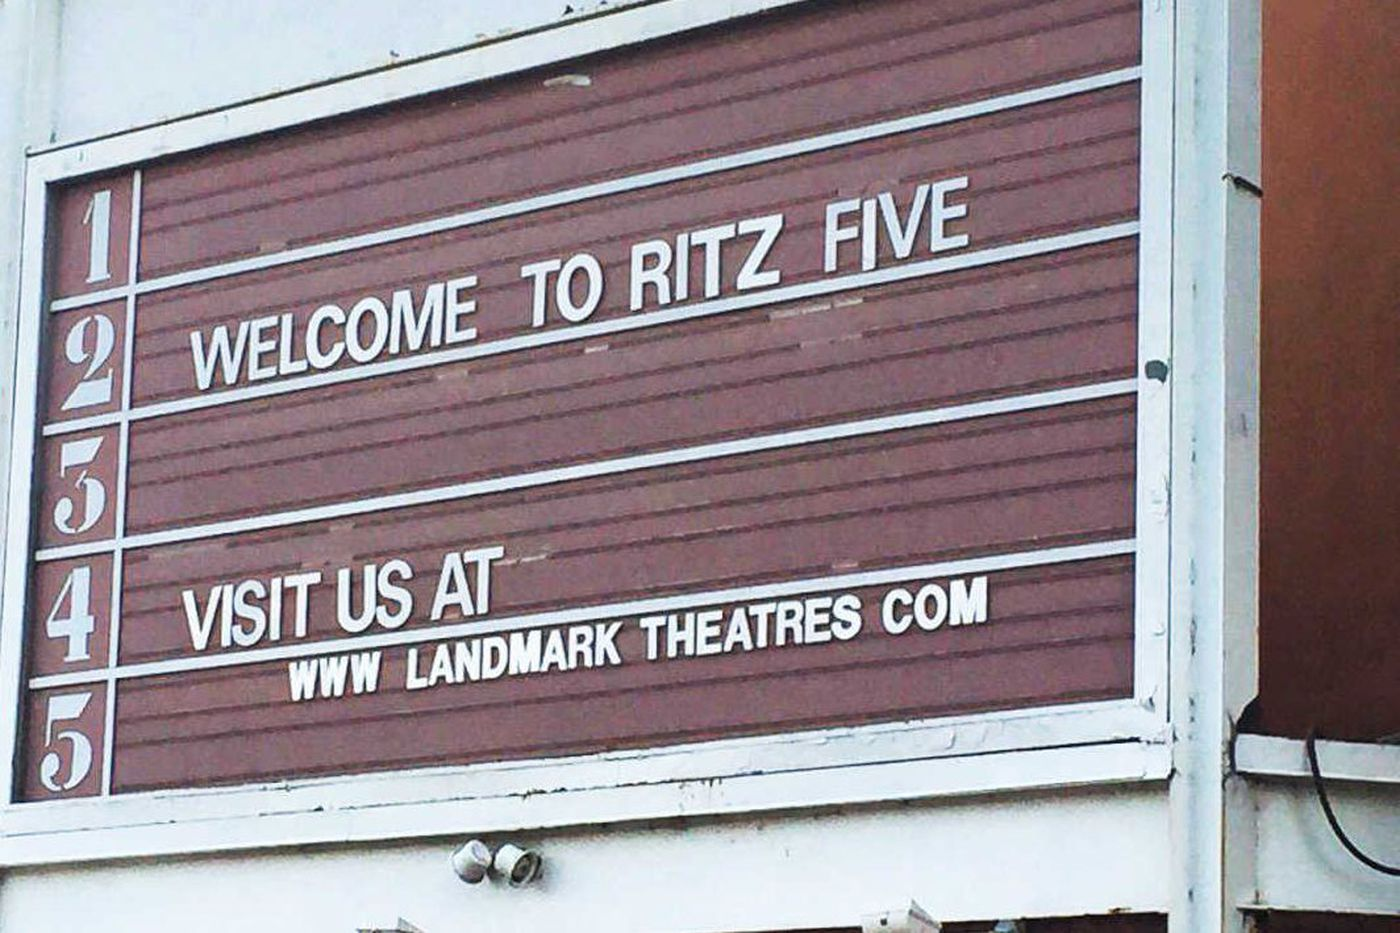 MoviePass now accepted at Ritz movie theaters